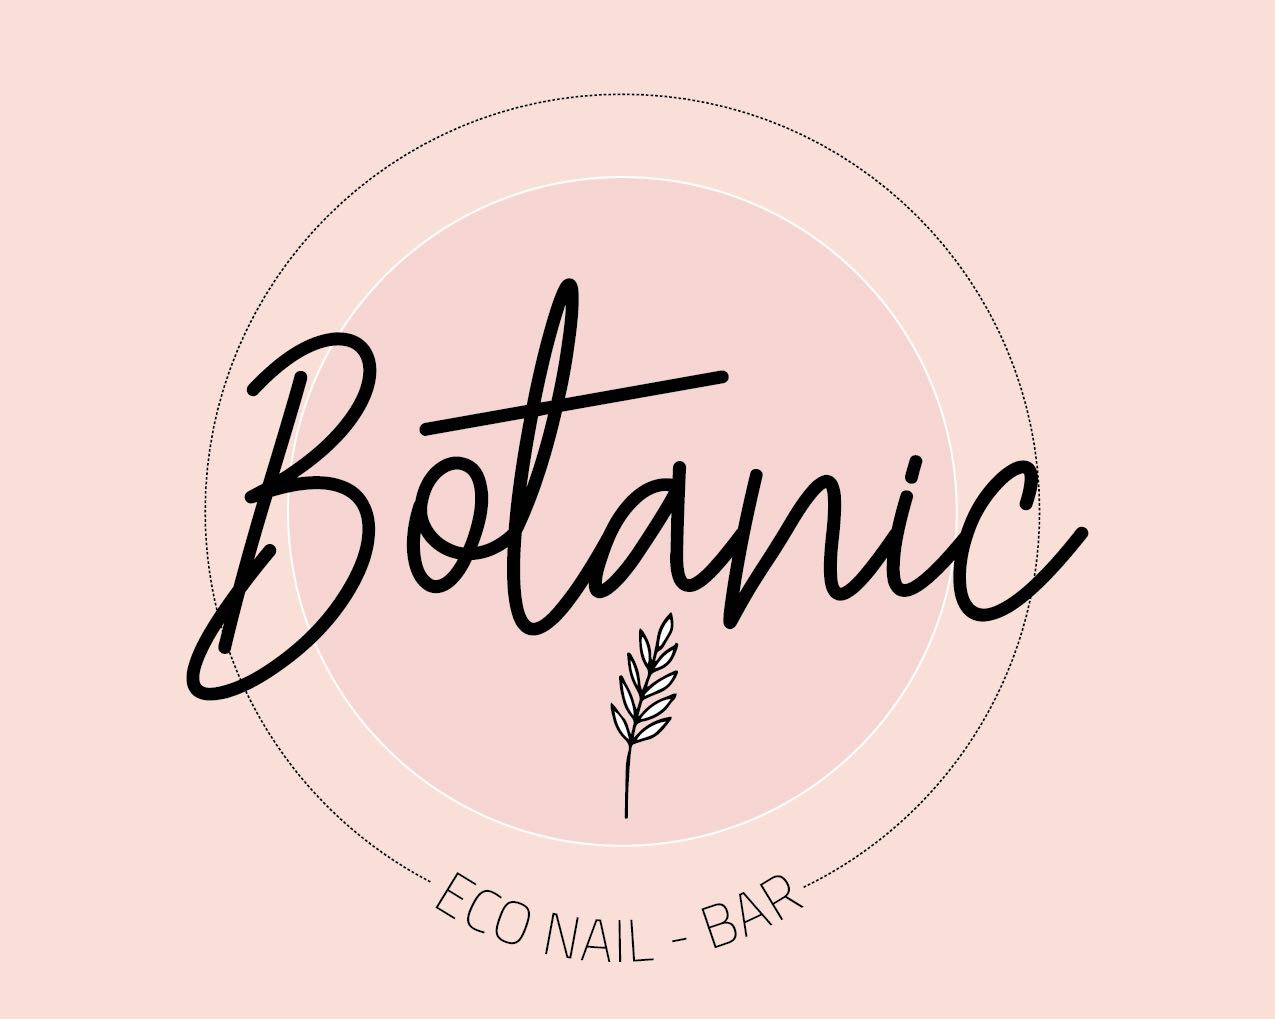 Botanic Eco Nail - Bar